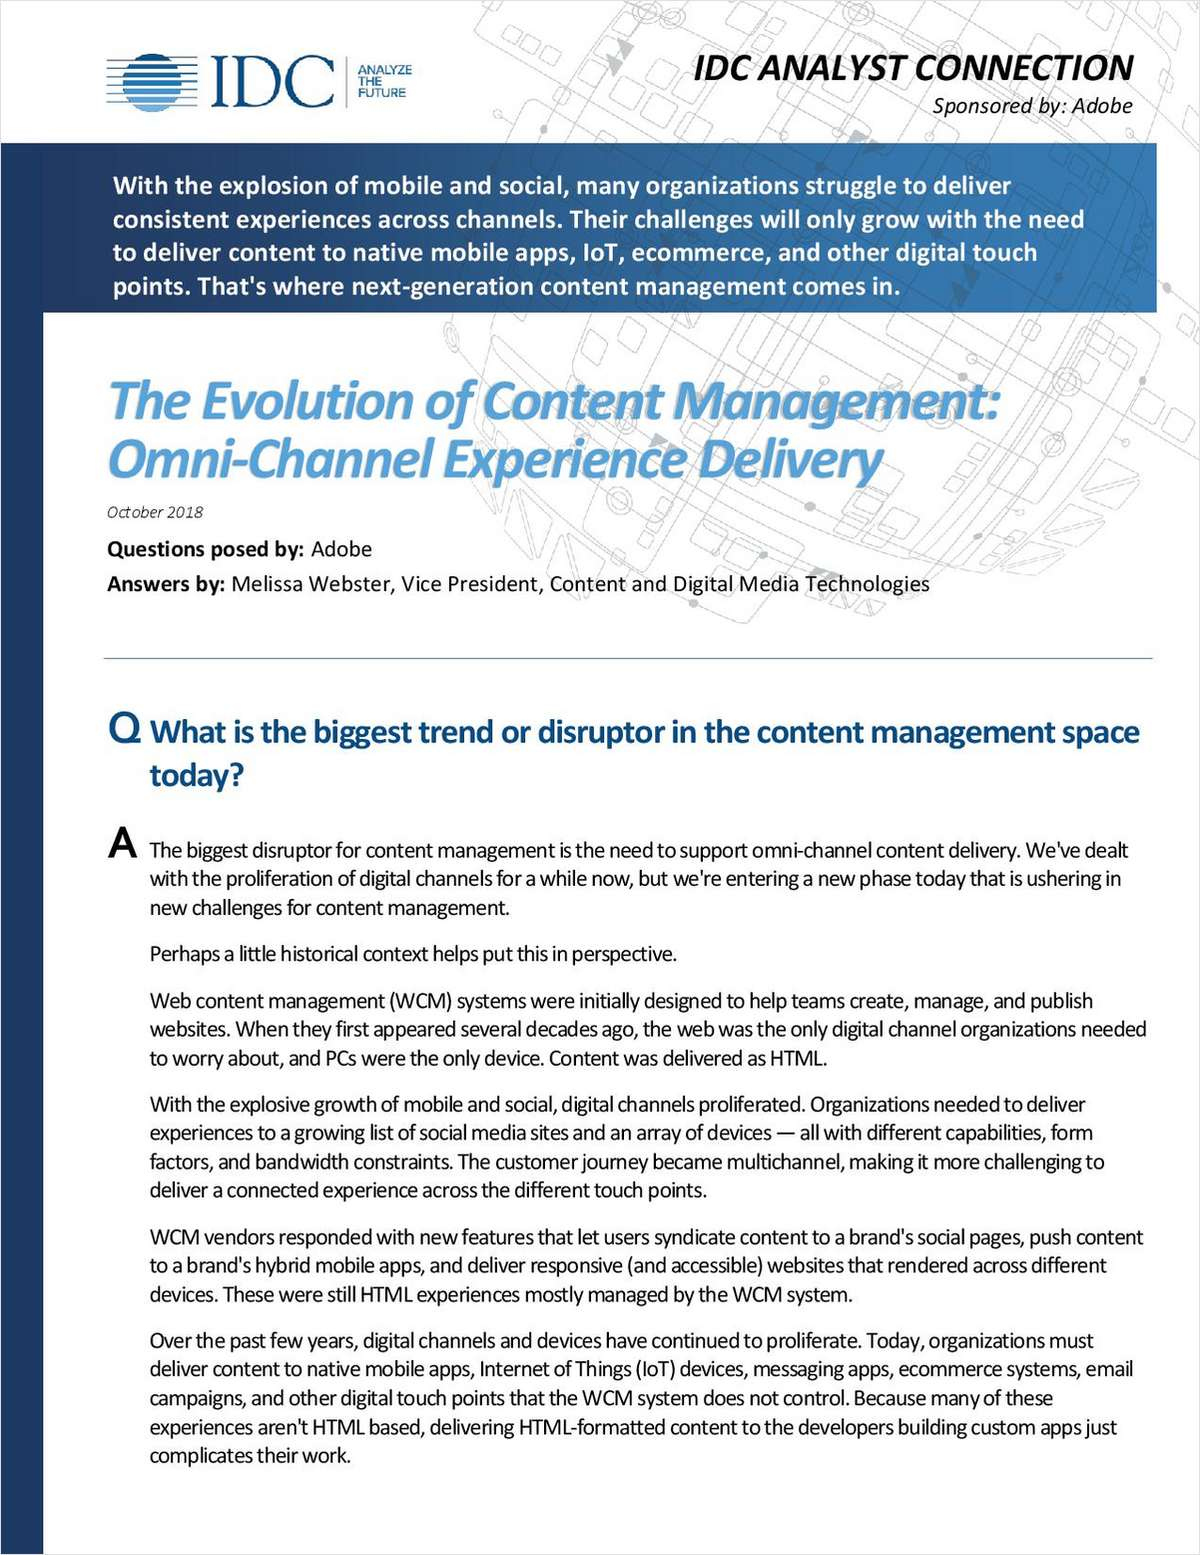 The Evolution of Content Management: Omni-Channel Experience Delivery